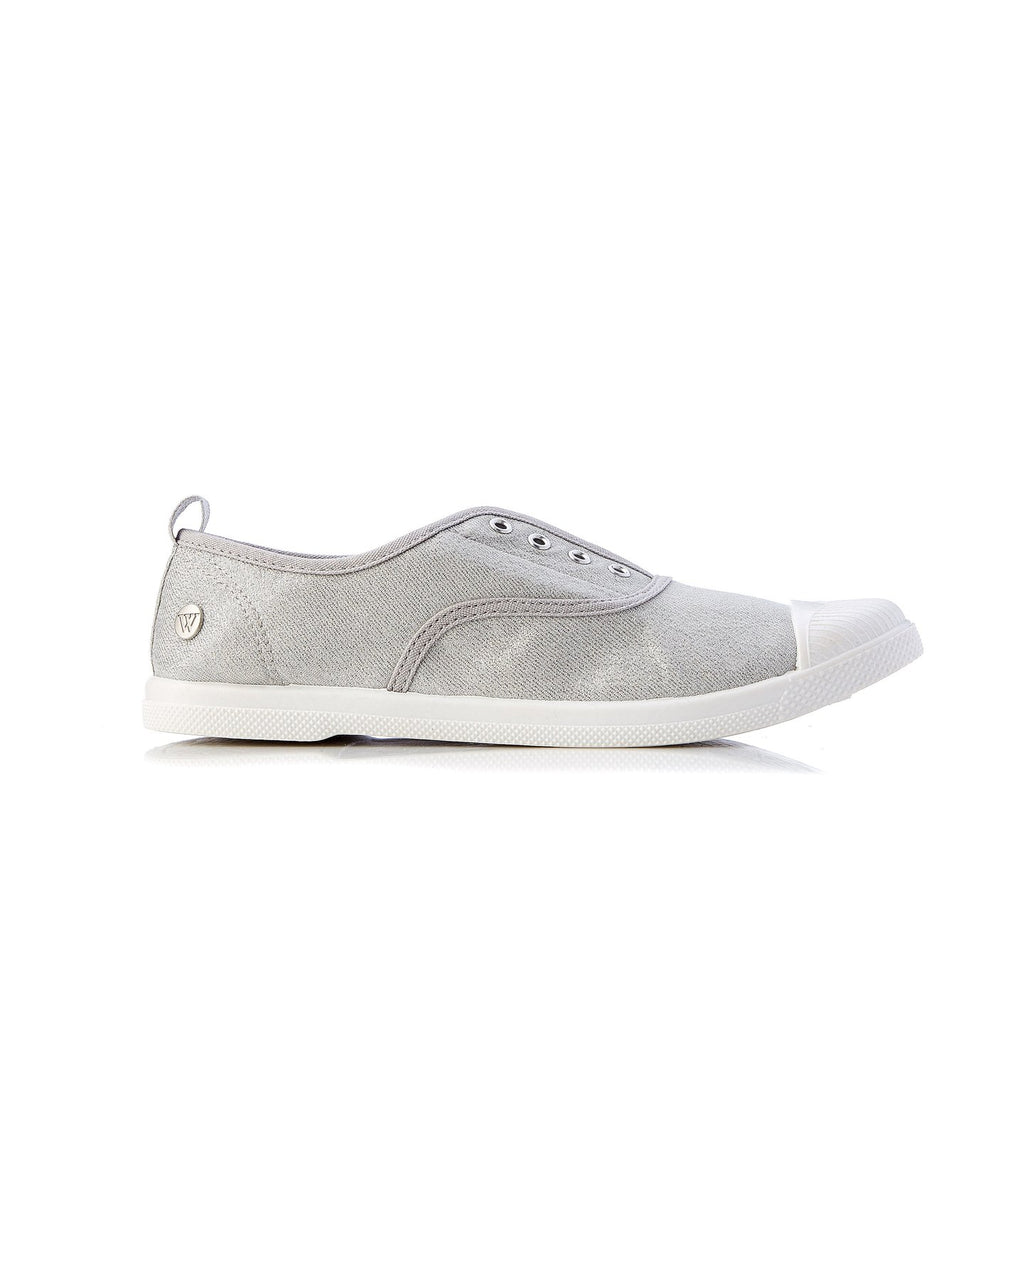 Walnut Melbourne Euro Canvas Plimsole Sneakers in Silver